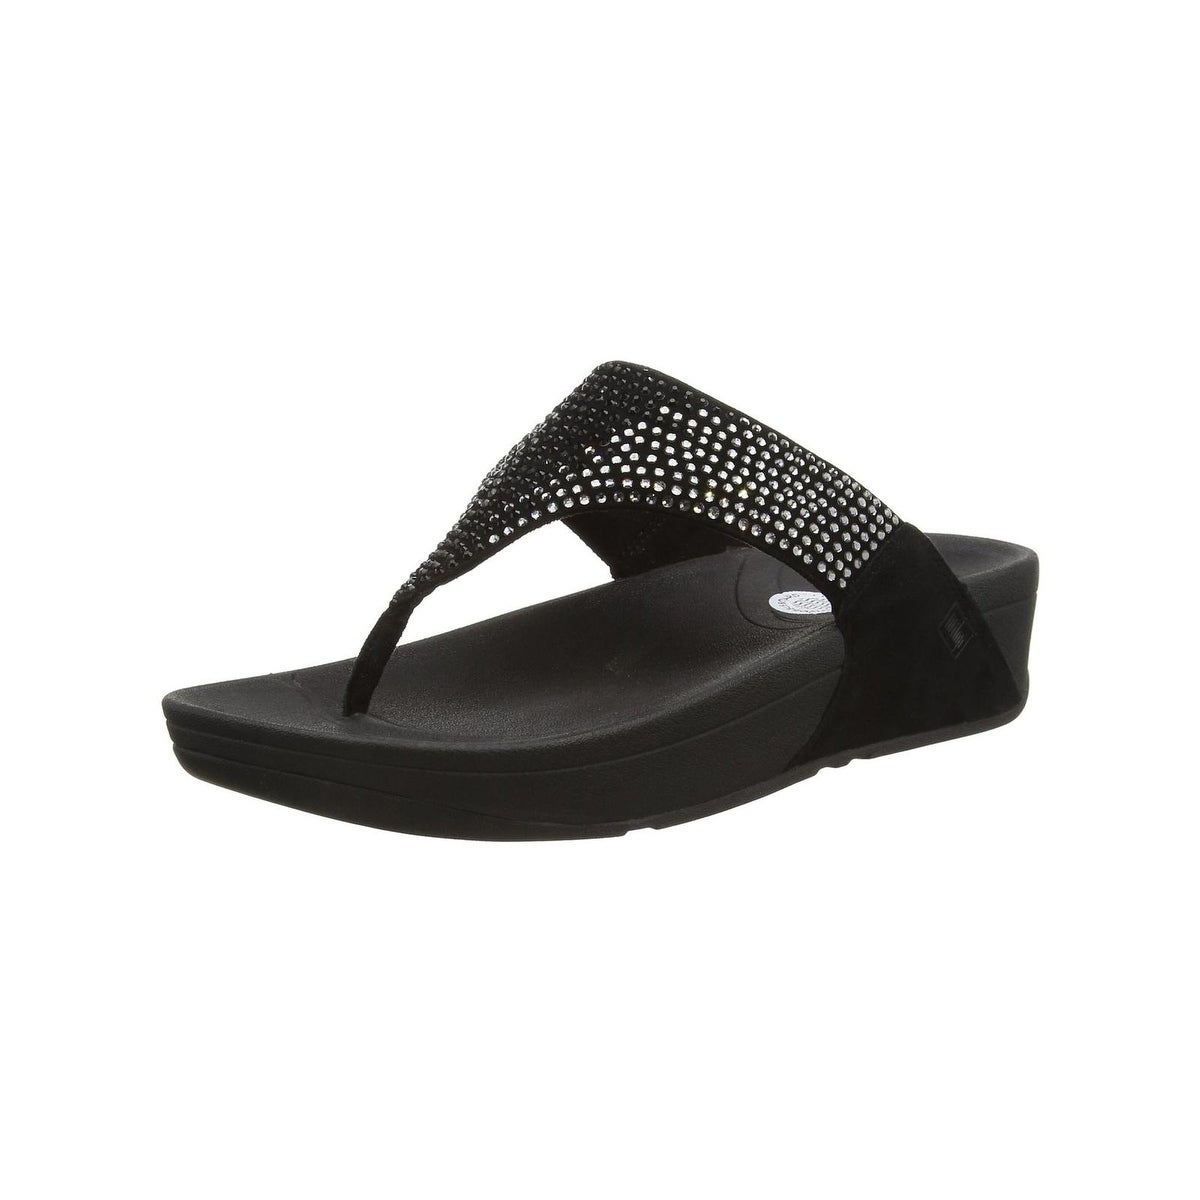 d31688a935 Buy FitFlop Women's Sandals Online at Overstock | Our Best Women's Shoes  Deals